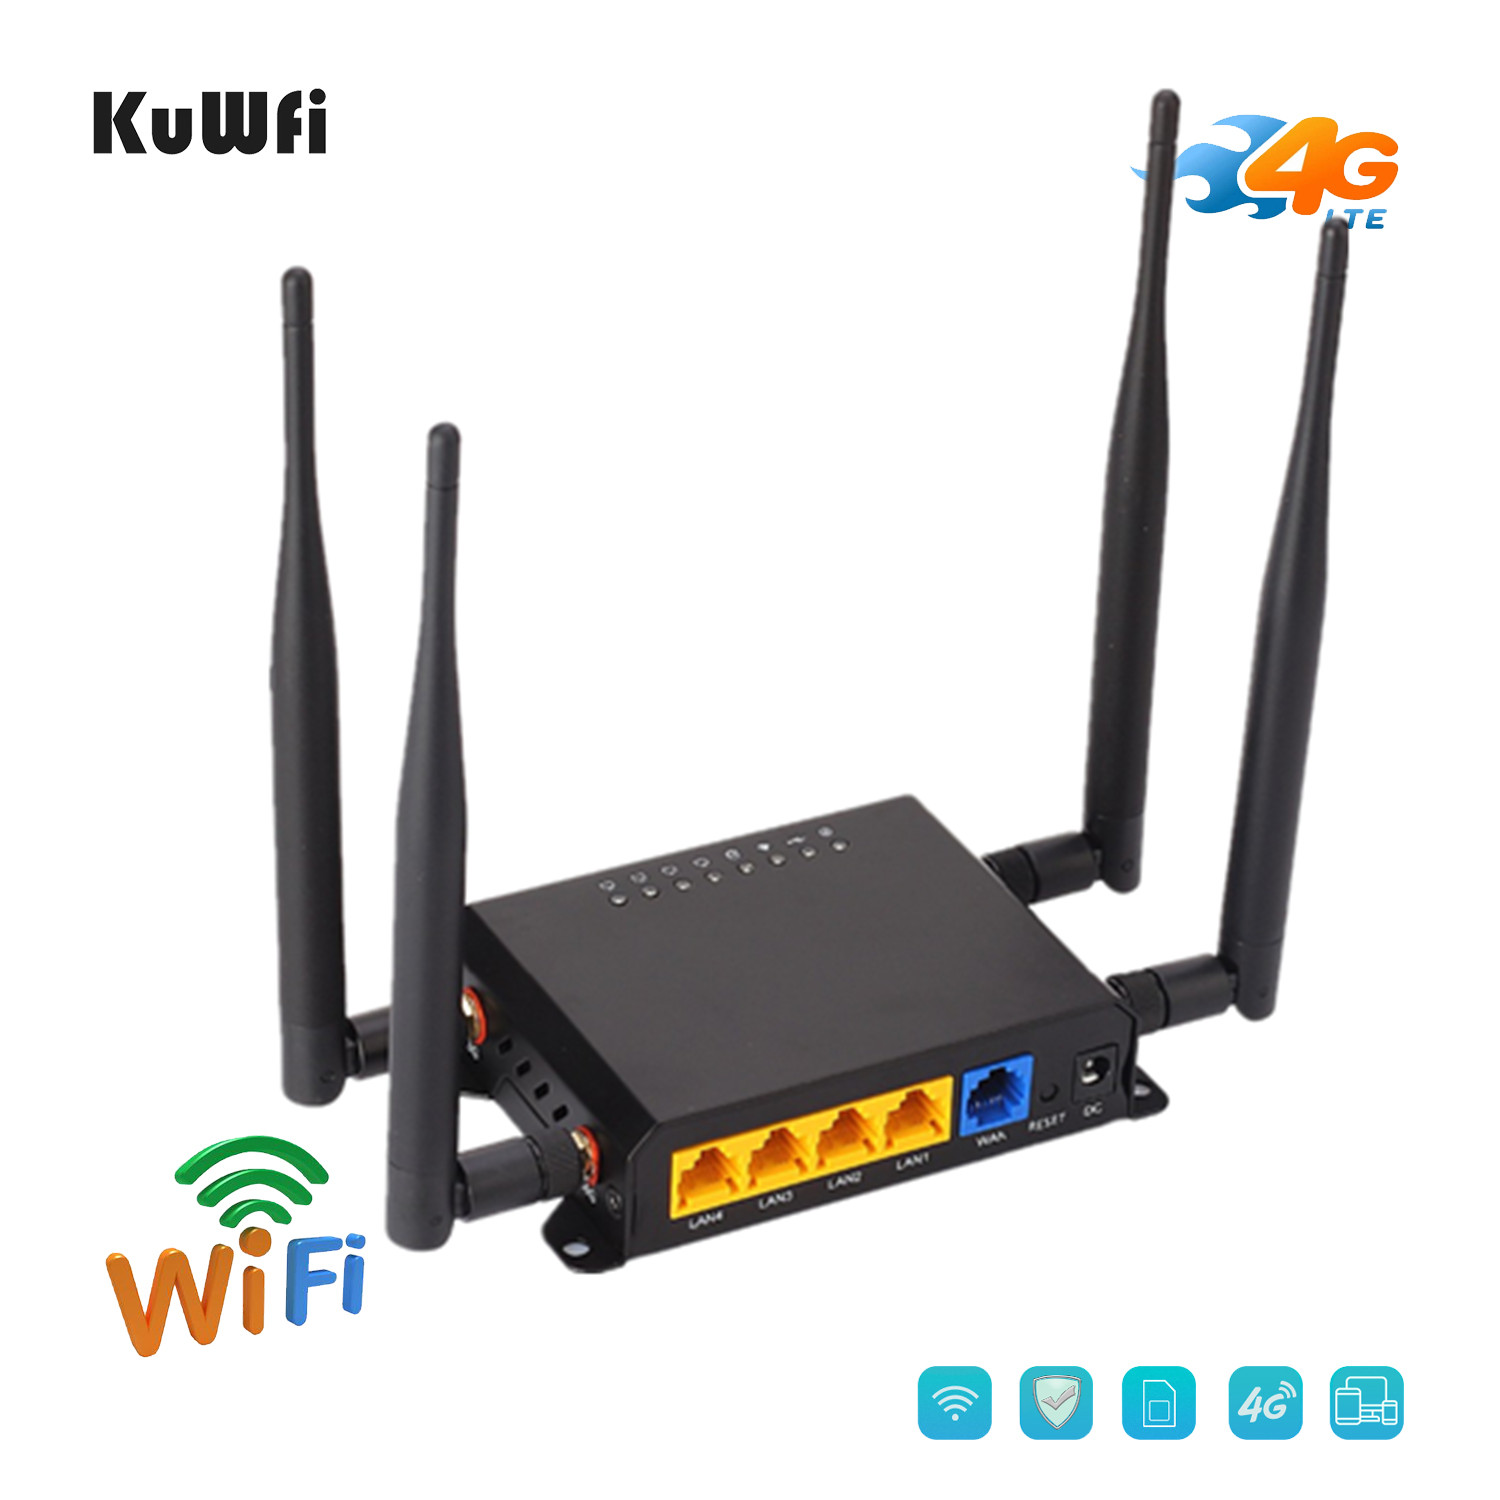 KuWfi Original 300Mbps Wireless Router CAT6 4G LTE CPE Uklocked FDD/TDD SIM Card Router With 4G Modem Up To 32Wifi Users